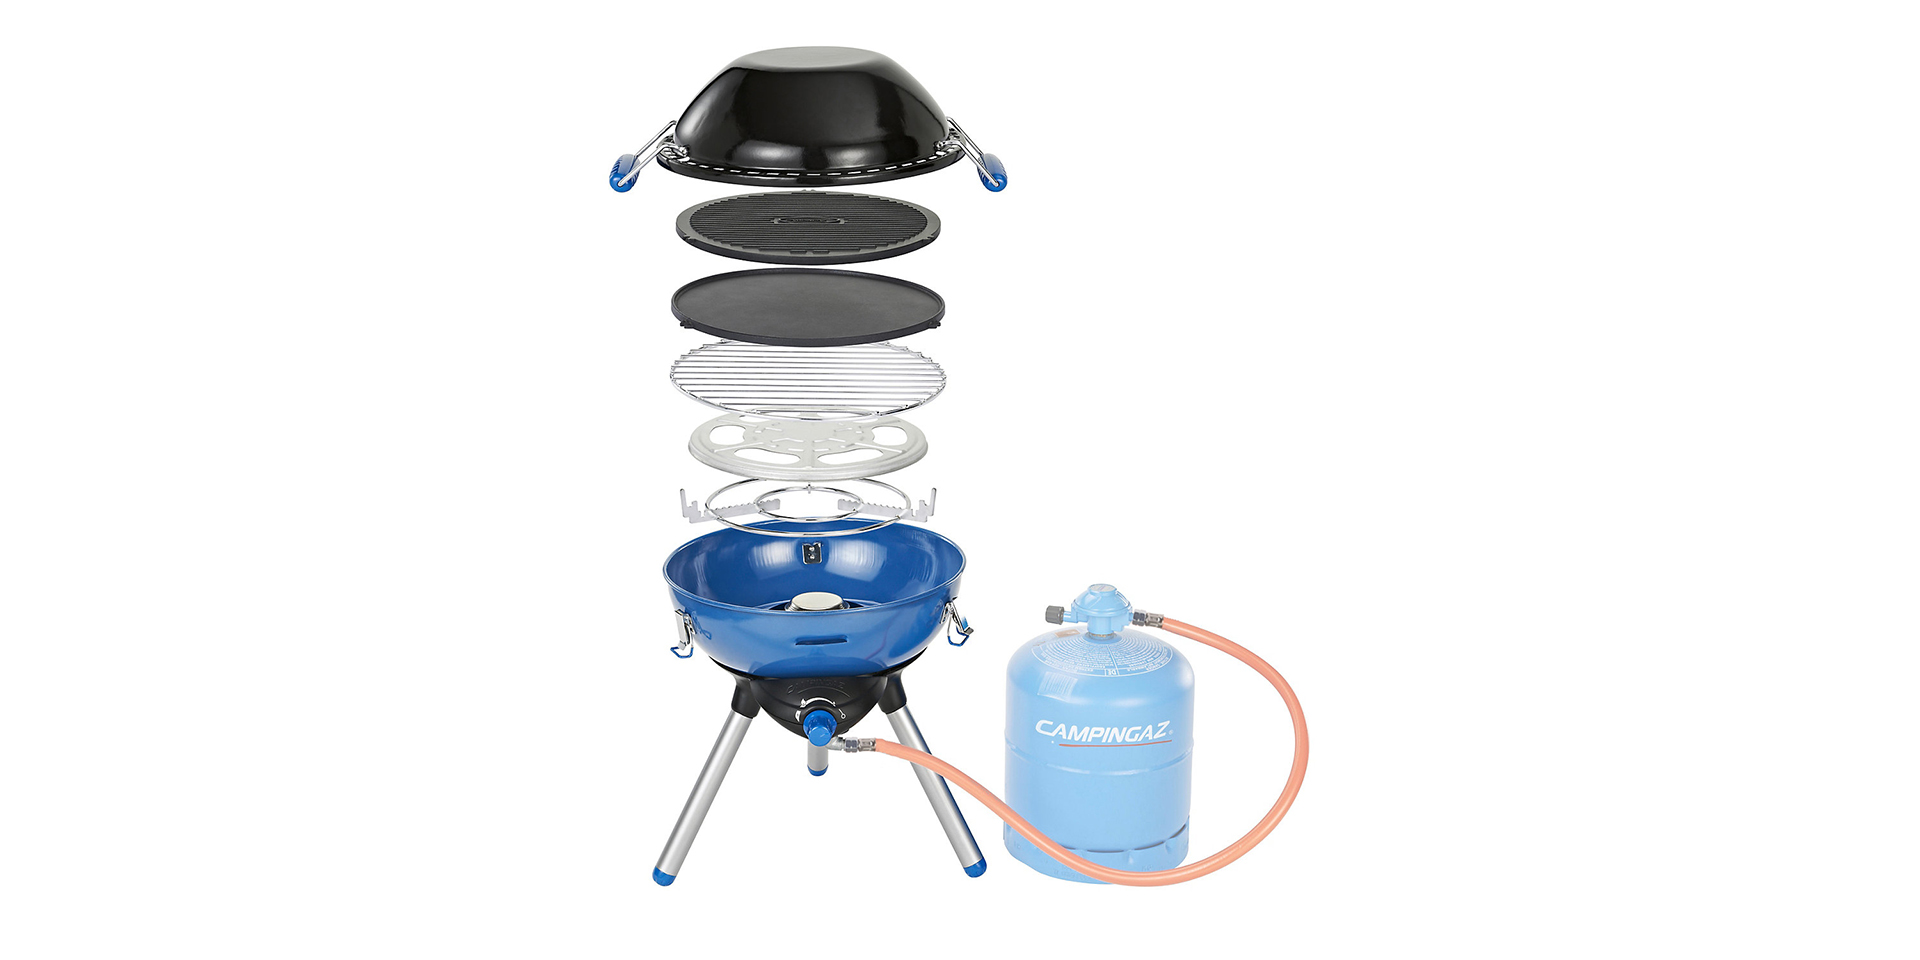 Campingaz_partygrill400eur1199902